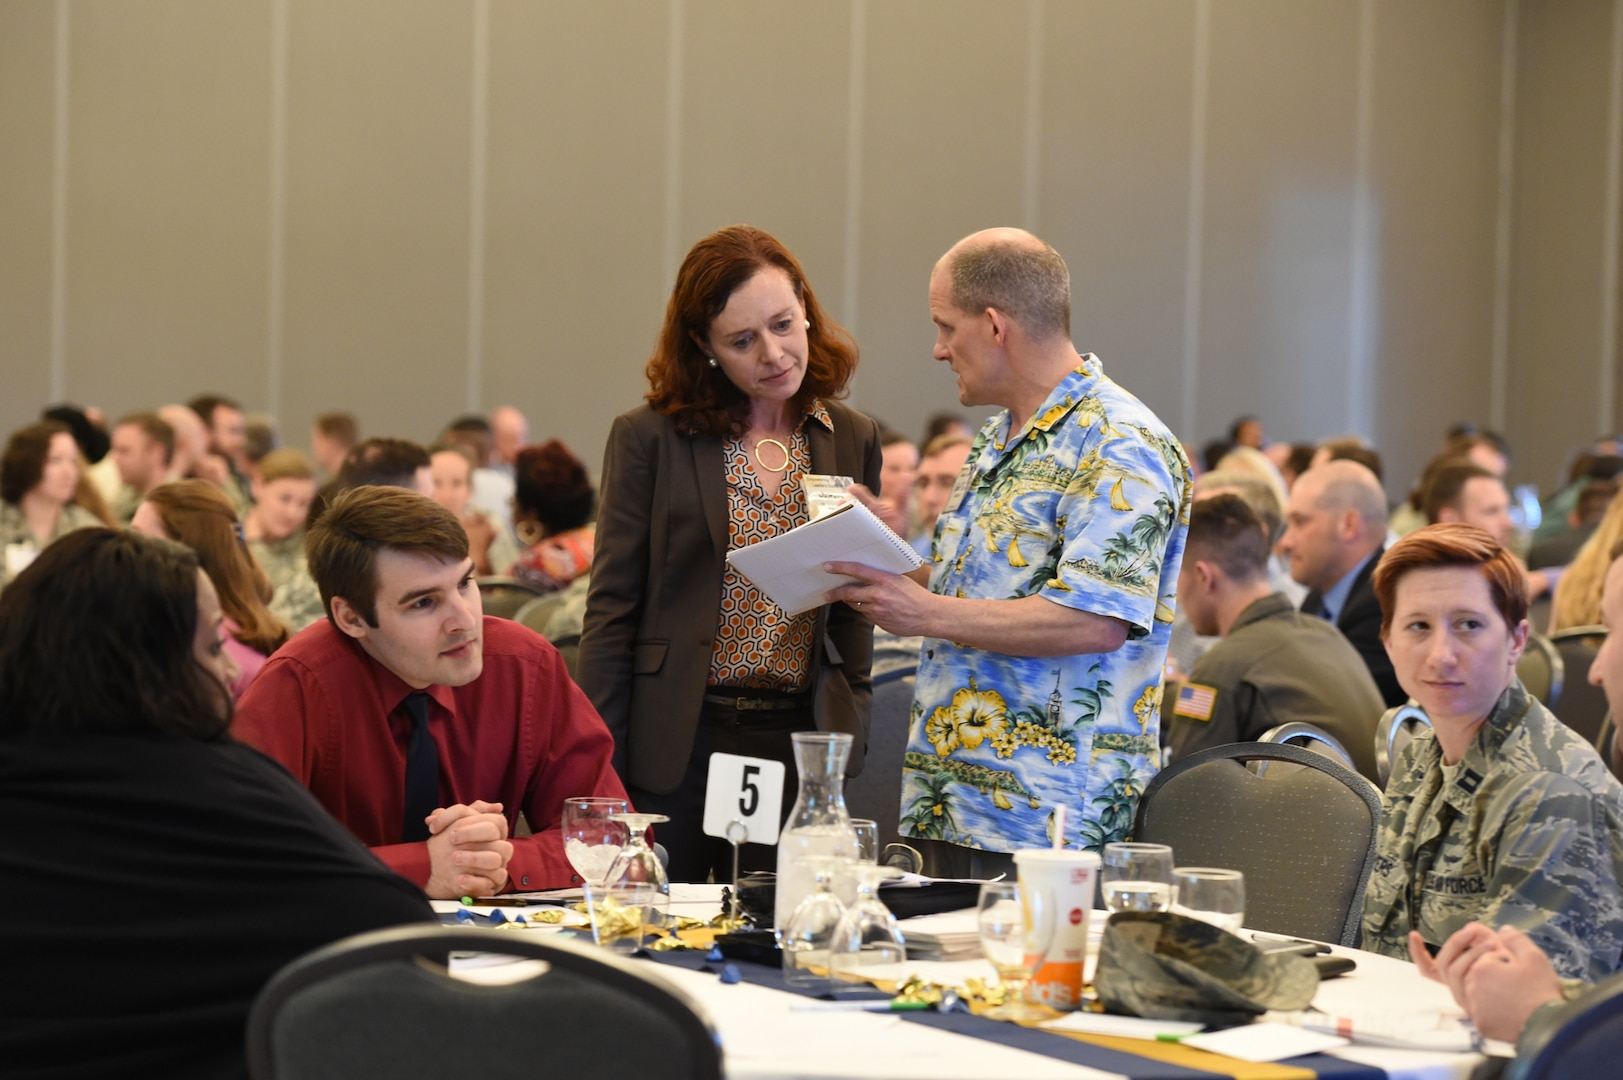 """Whitney Hischier, Red Team Thinking LLC and lecturer, University of California, Berkeley, speaks with Travis Tucker, U.S. Strategic Command cyber analyst, at the 2nd annual """"Empowering Tomorrow's Leaders"""" conference at the Beardmore Event Center in Bellevue, Neb., May 7, 2018. More than 300 attendees, nominated by their leadership, attended the all-day event. The theme this year was """"Igniting Innovation: How to Go Faster"""" featuring speakers and panelists to inspire out-of-the box thinking. (U.S. Navy photo by Mass Communication Specialist 1st Class Julie R. Matyascik)"""